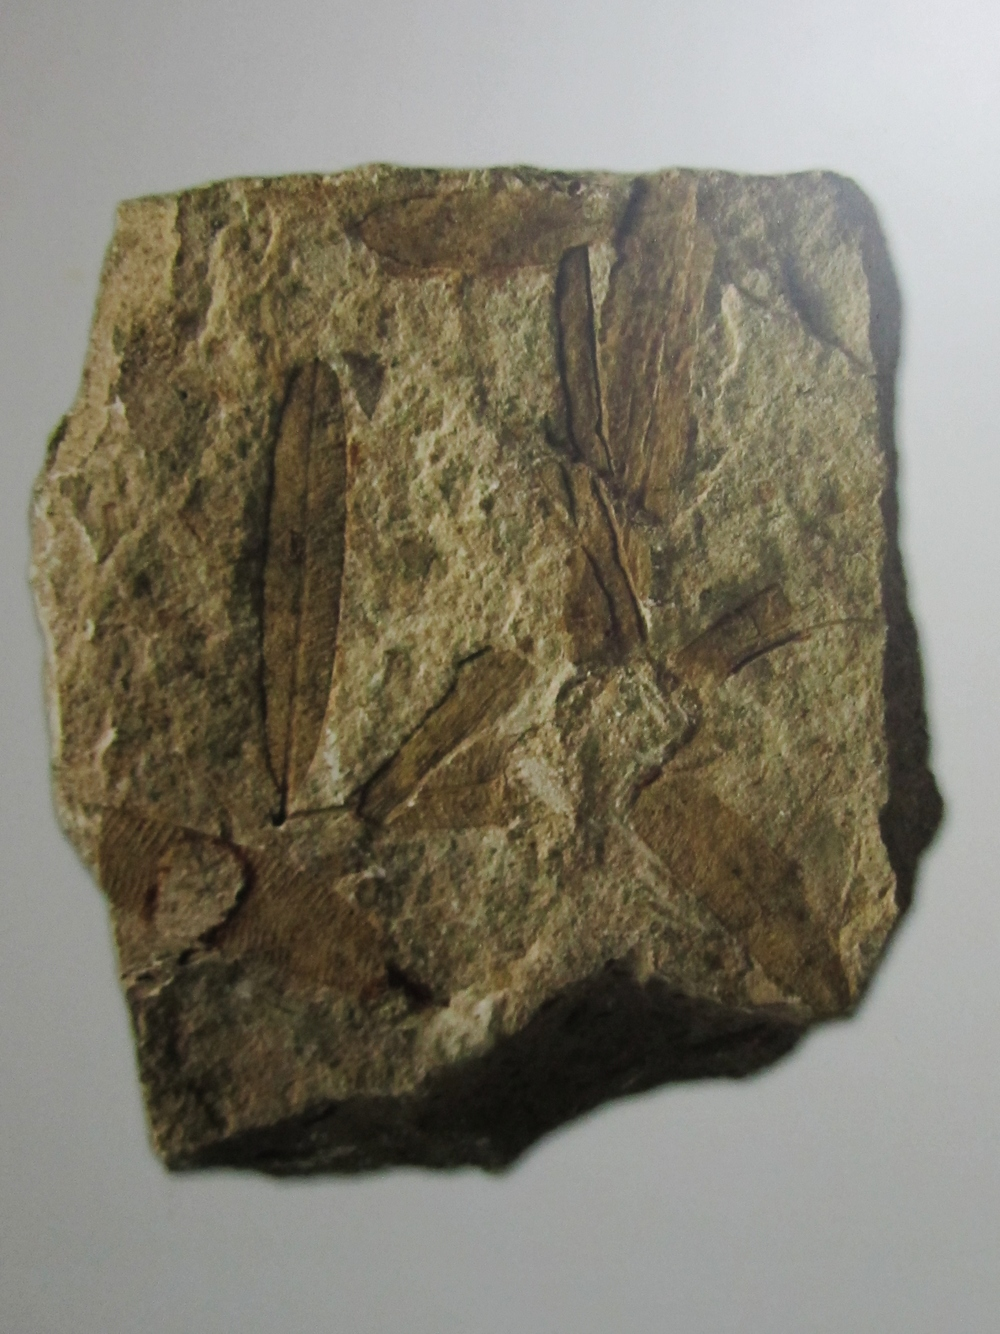 paris rock catacomb leaf imprint fossil.JPG